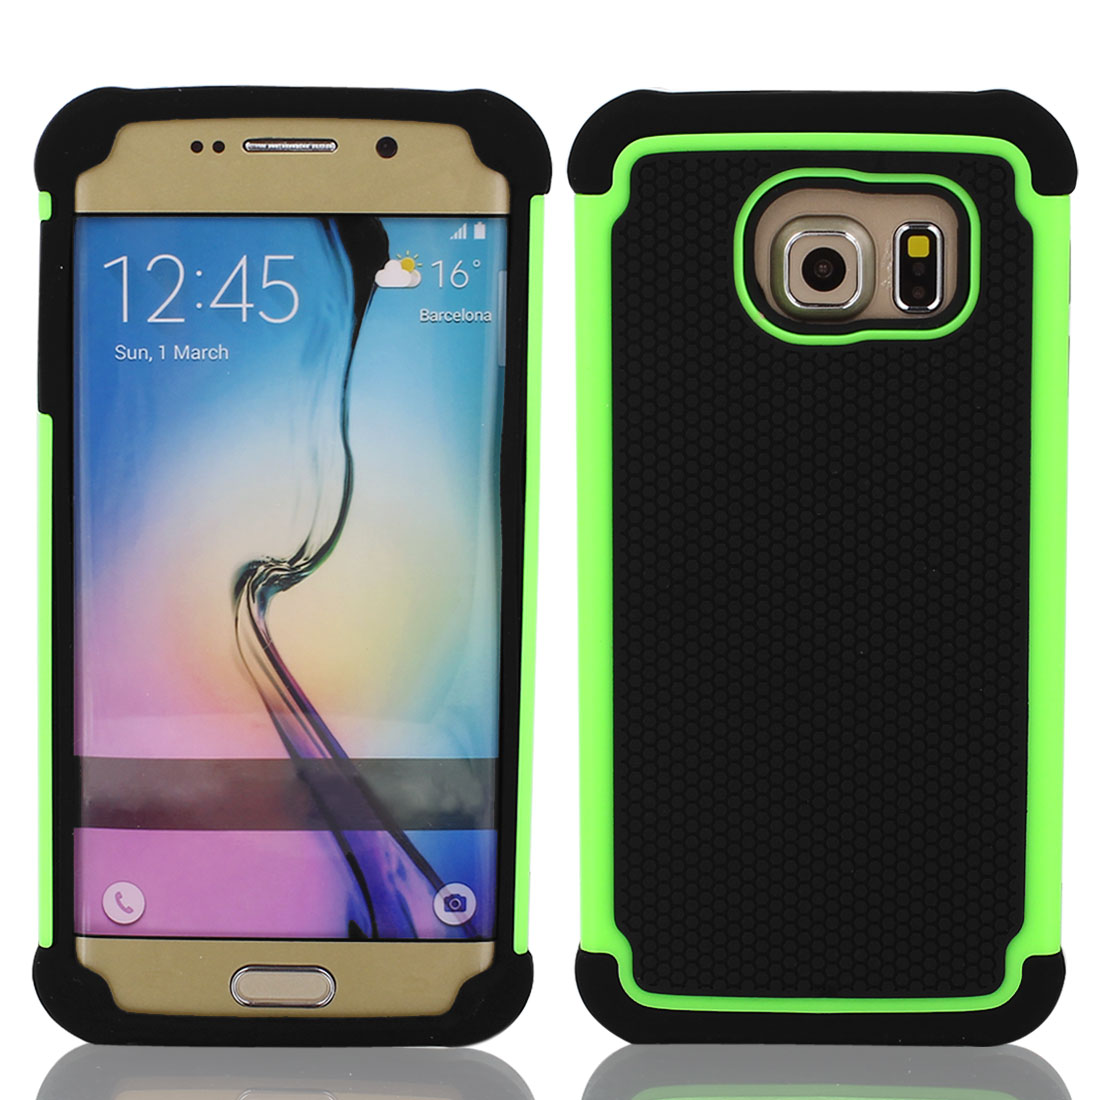 Black Green Back Case Cover Protector w Protective Film Wiper for S6